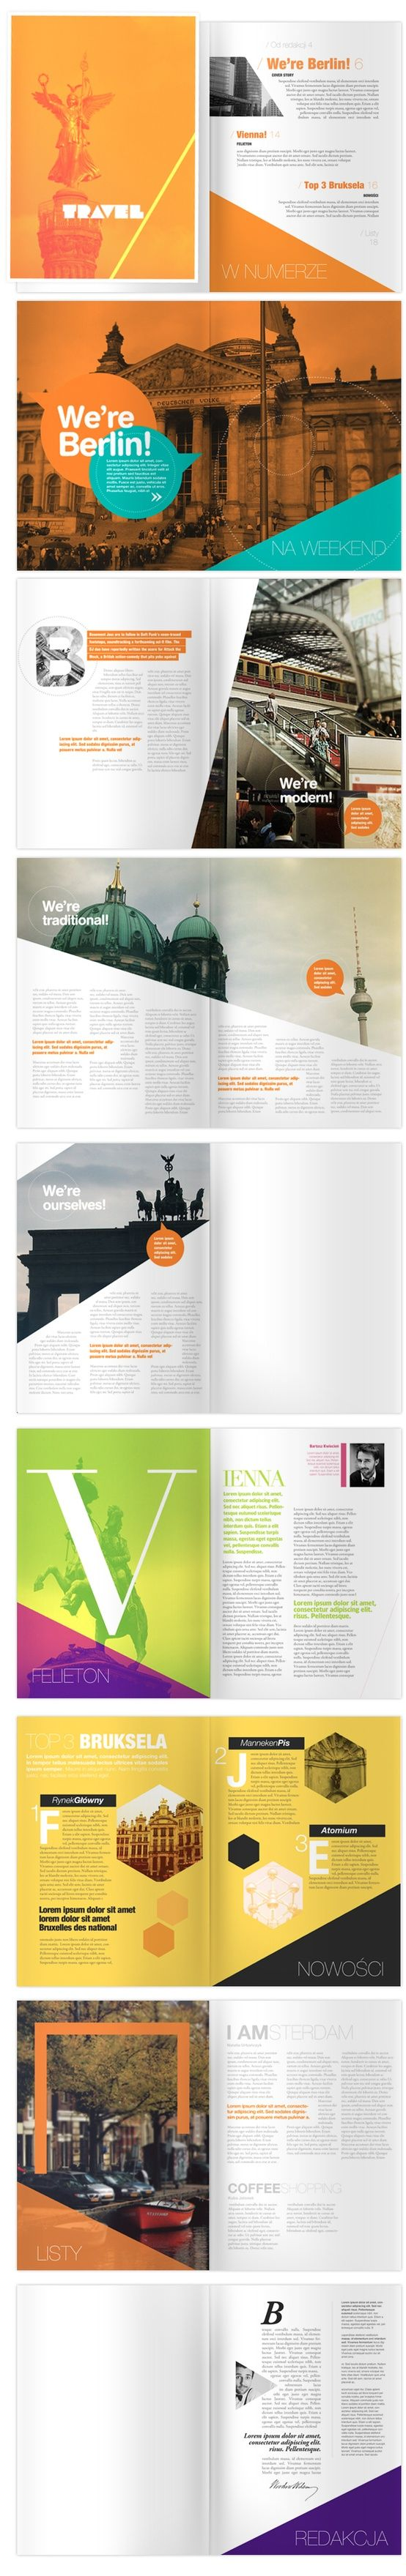 Image Spark - Image tagged editorial design, print design, layout - scoreandten more on http://html5themes.org